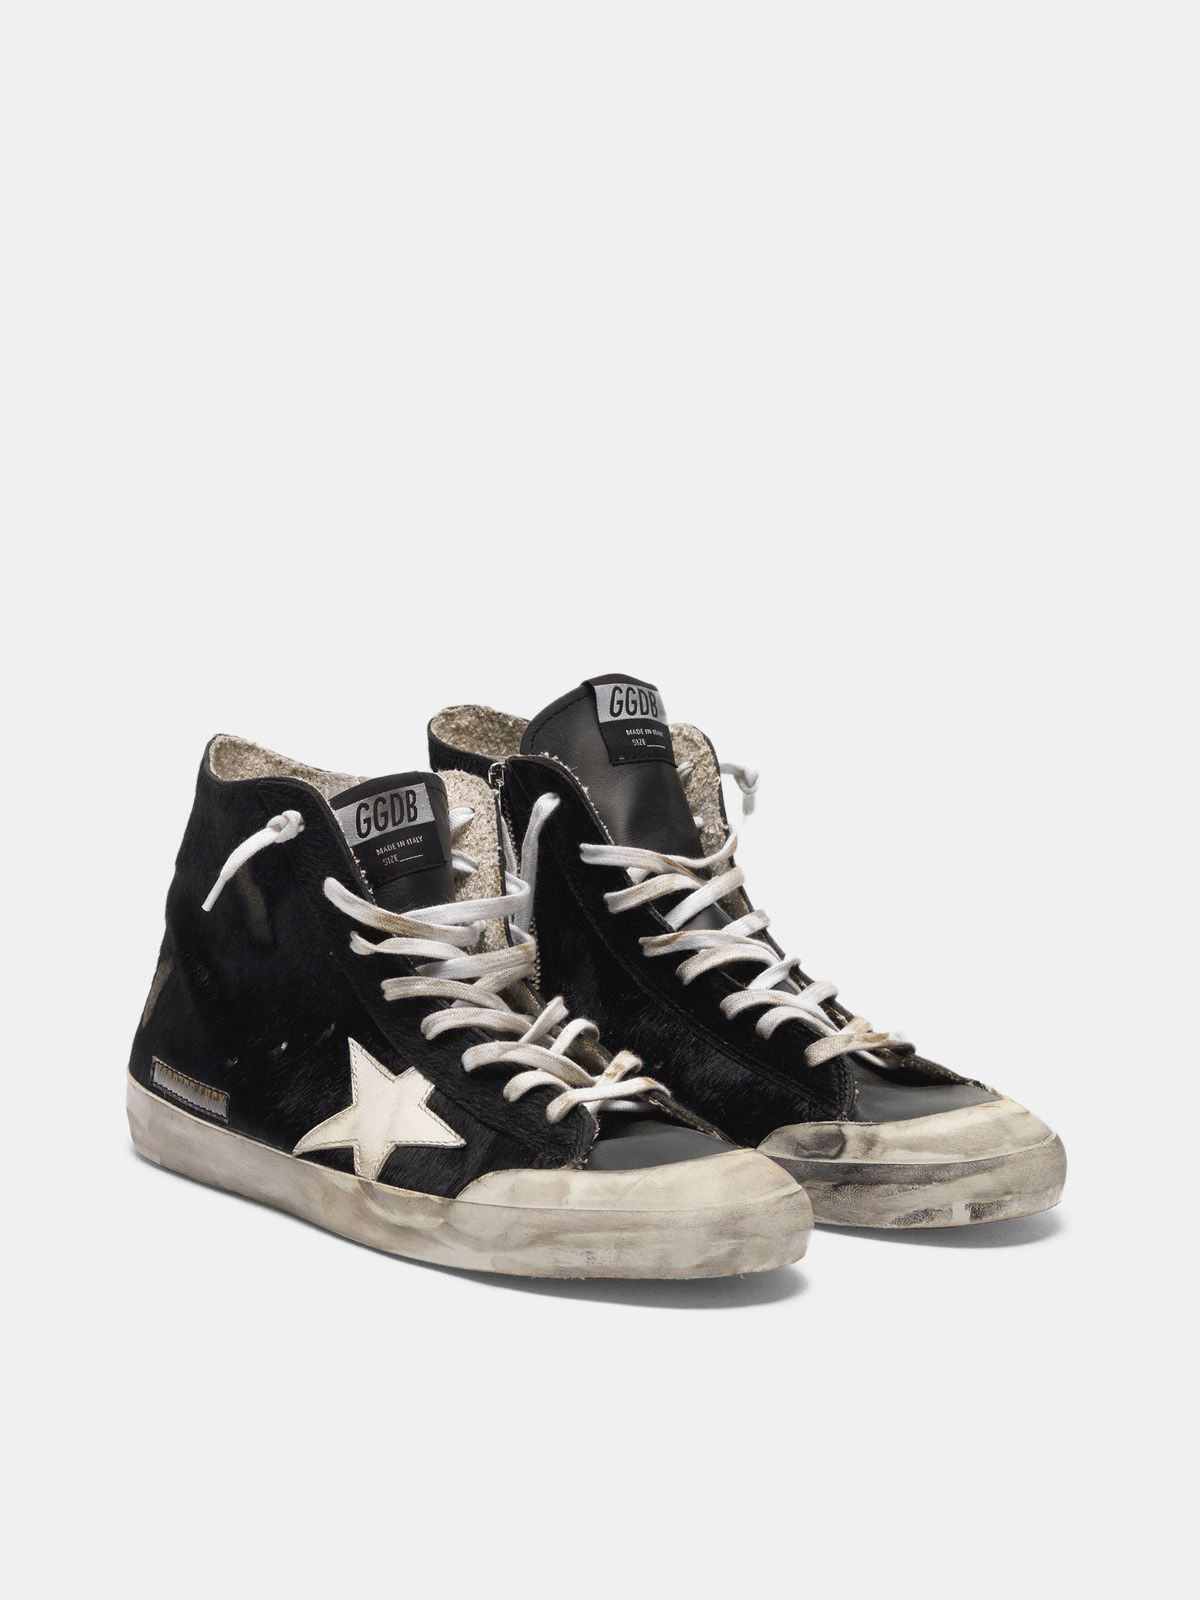 Golden Goose - Francy sneakers in pony skin with contrast star in